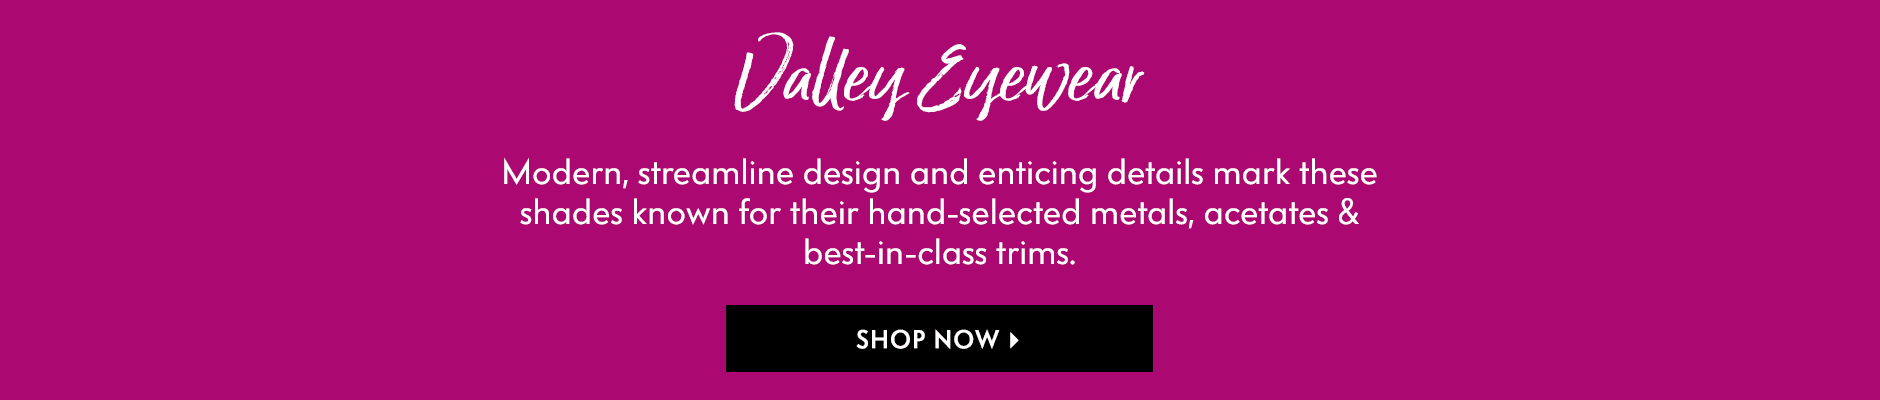 Valley Eyewear - Modern, streamline design and enticing details mark these shades known for their hand-selected metals, acetates & best-in-class trims.